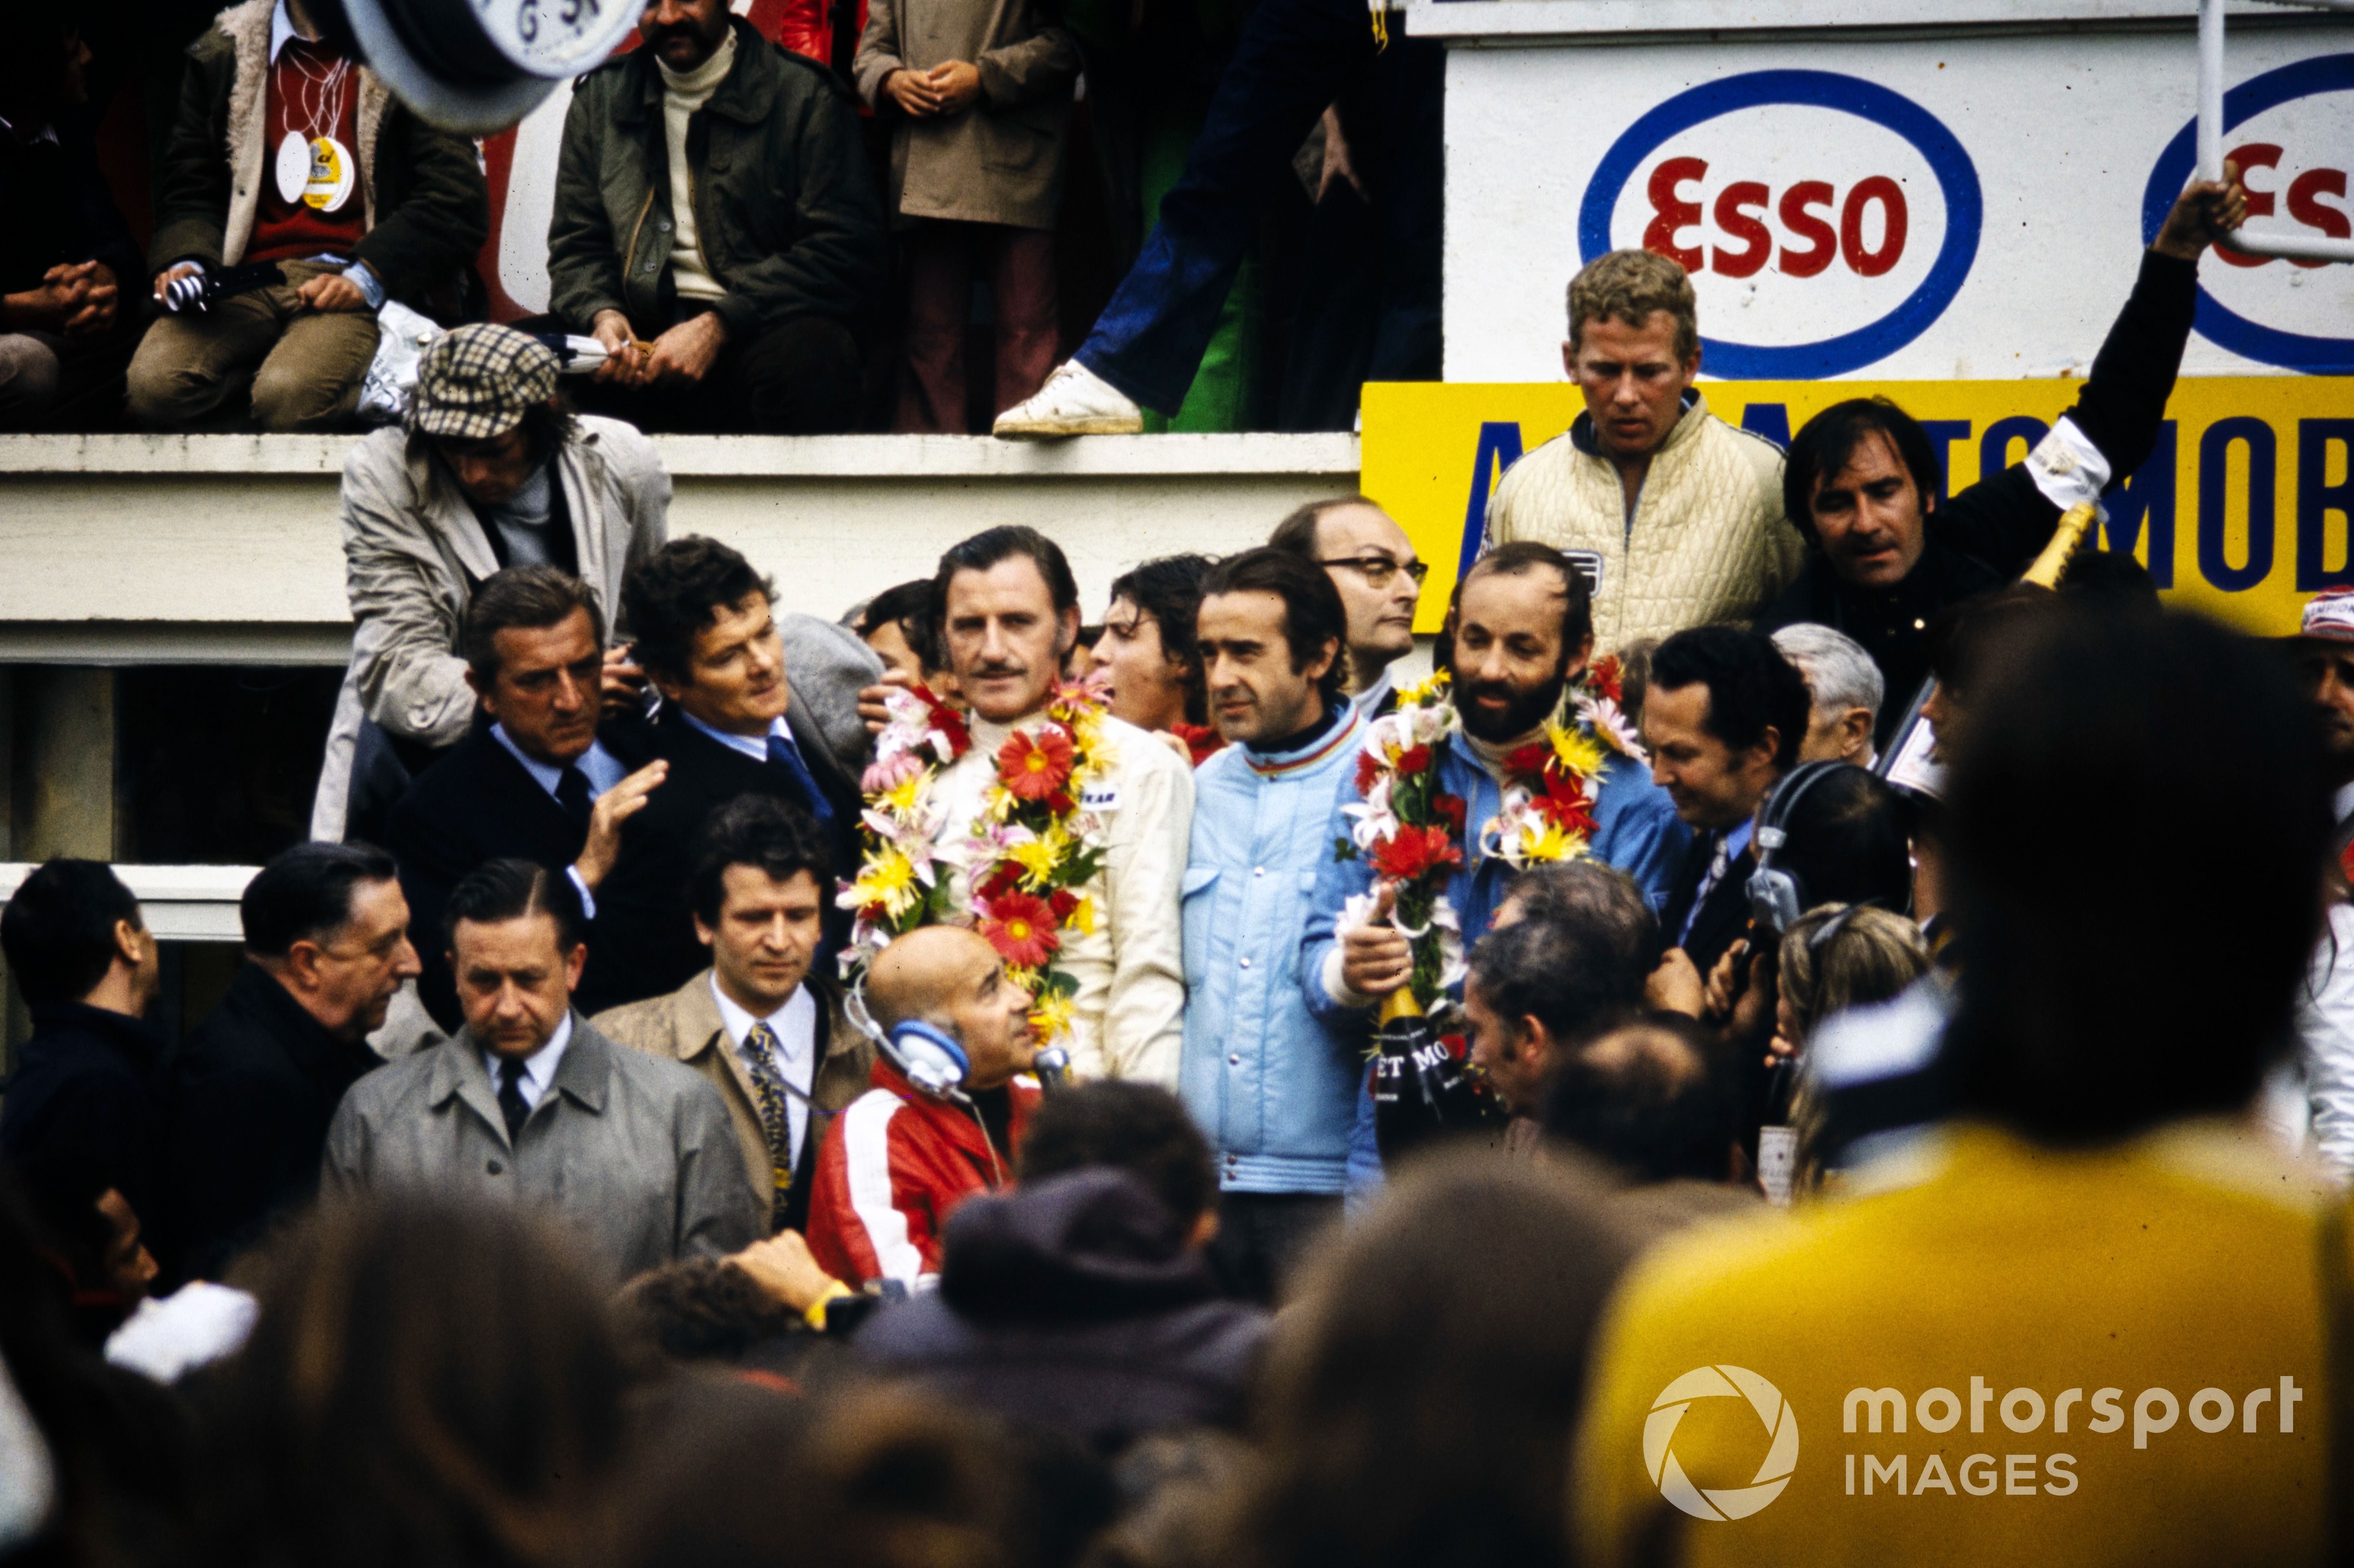 Graham Hill and Henri Pescarolo, 1st position, celebrate on the podium, 1972 Le Mans 24 Hours